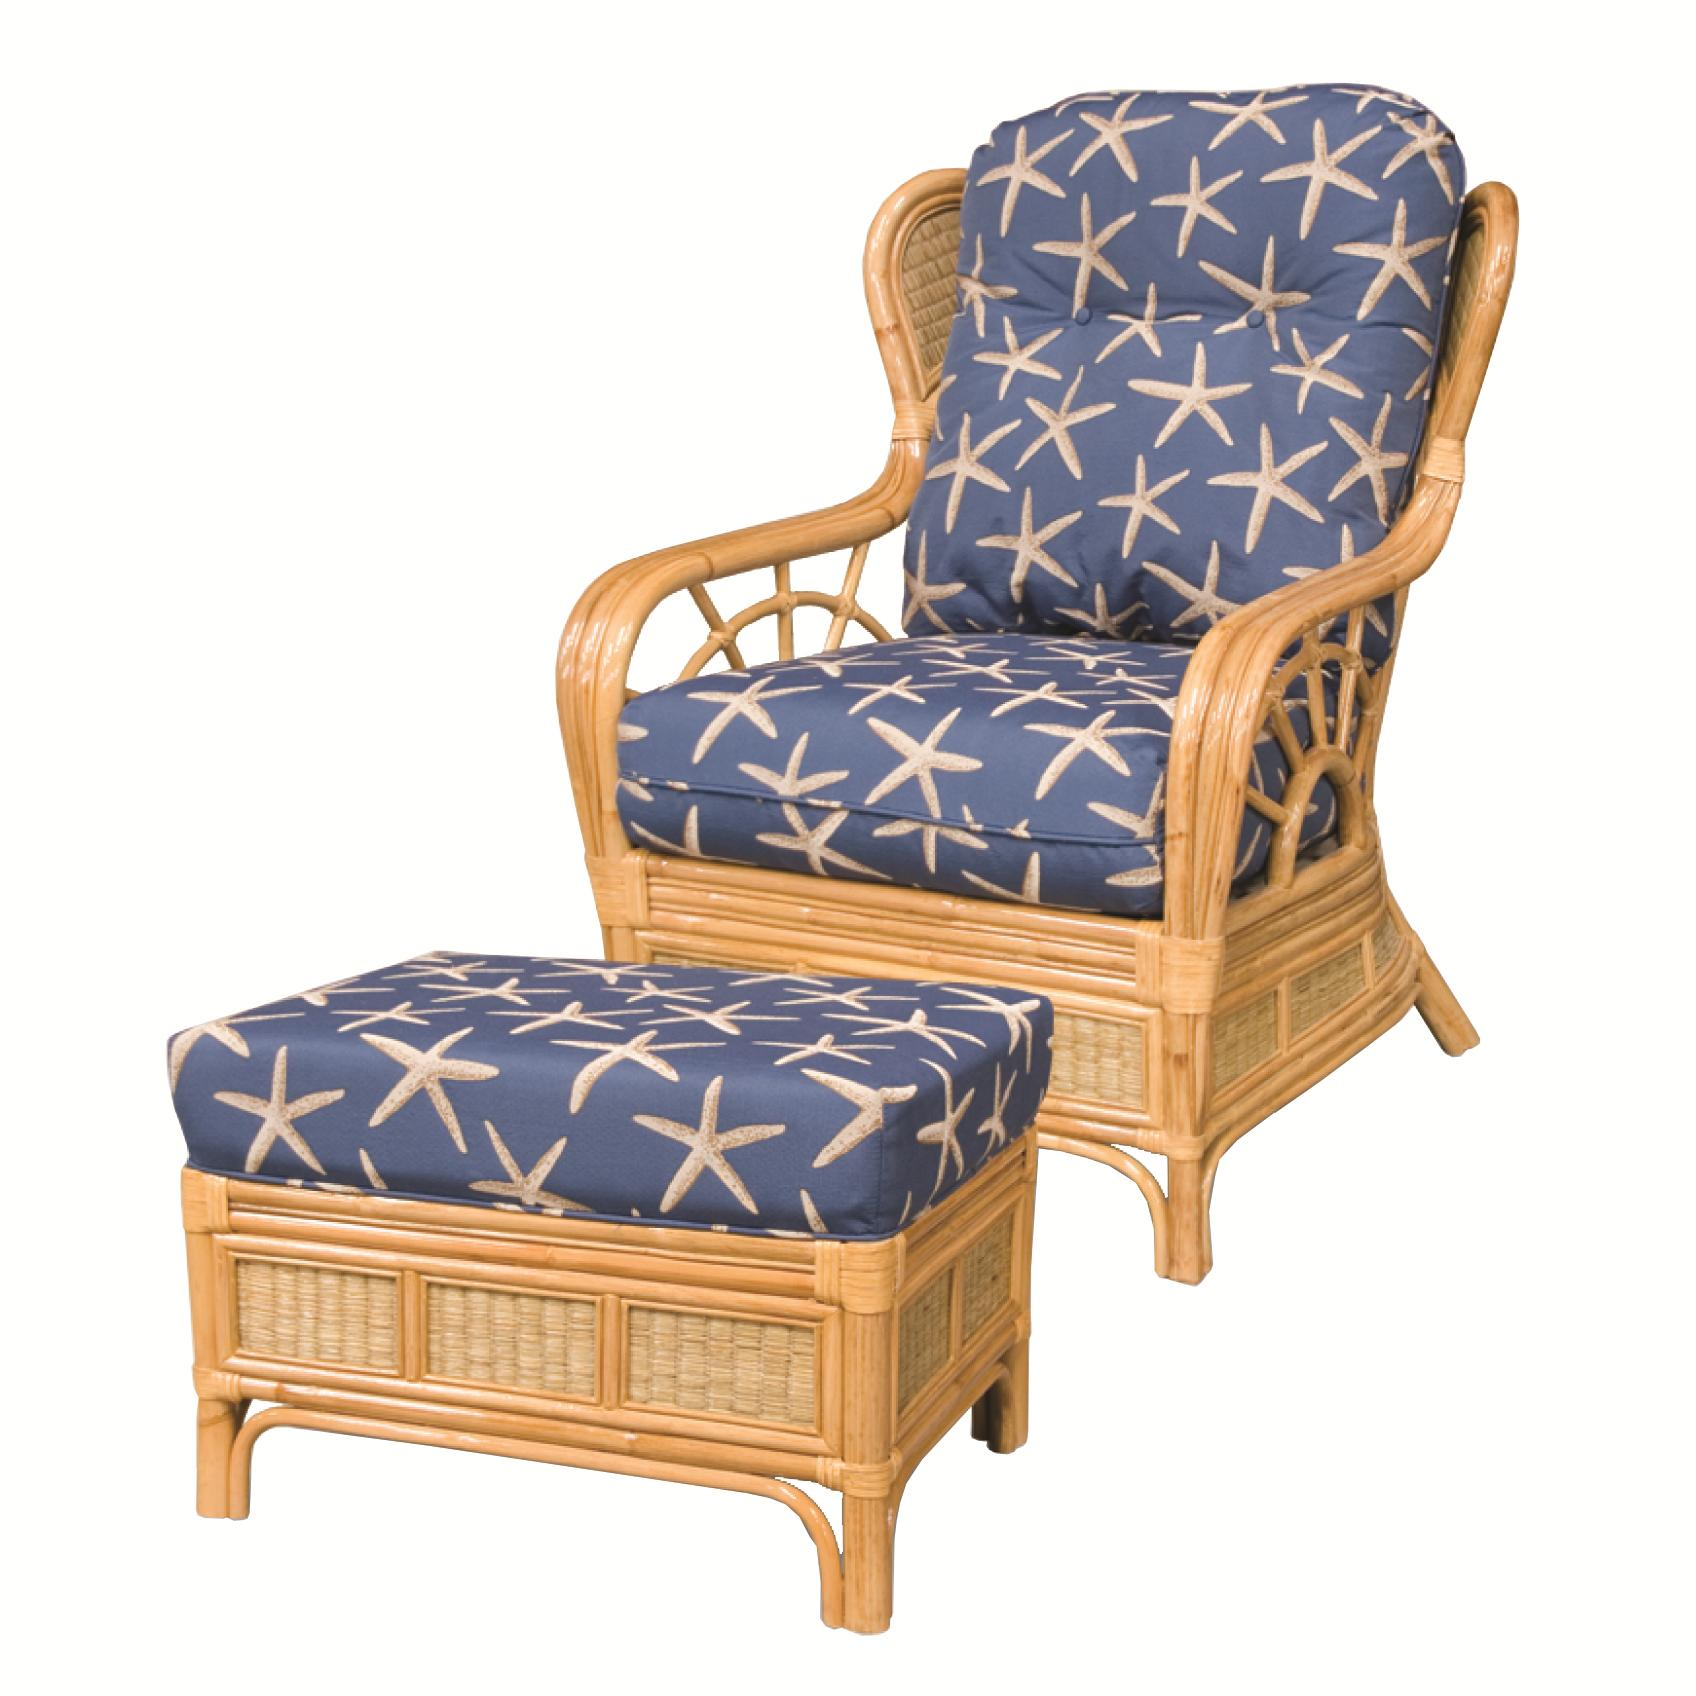 381 Collection Wicker Rattan Chair and Ottoman by Capris Furniture at Esprit Decor Home Furnishings